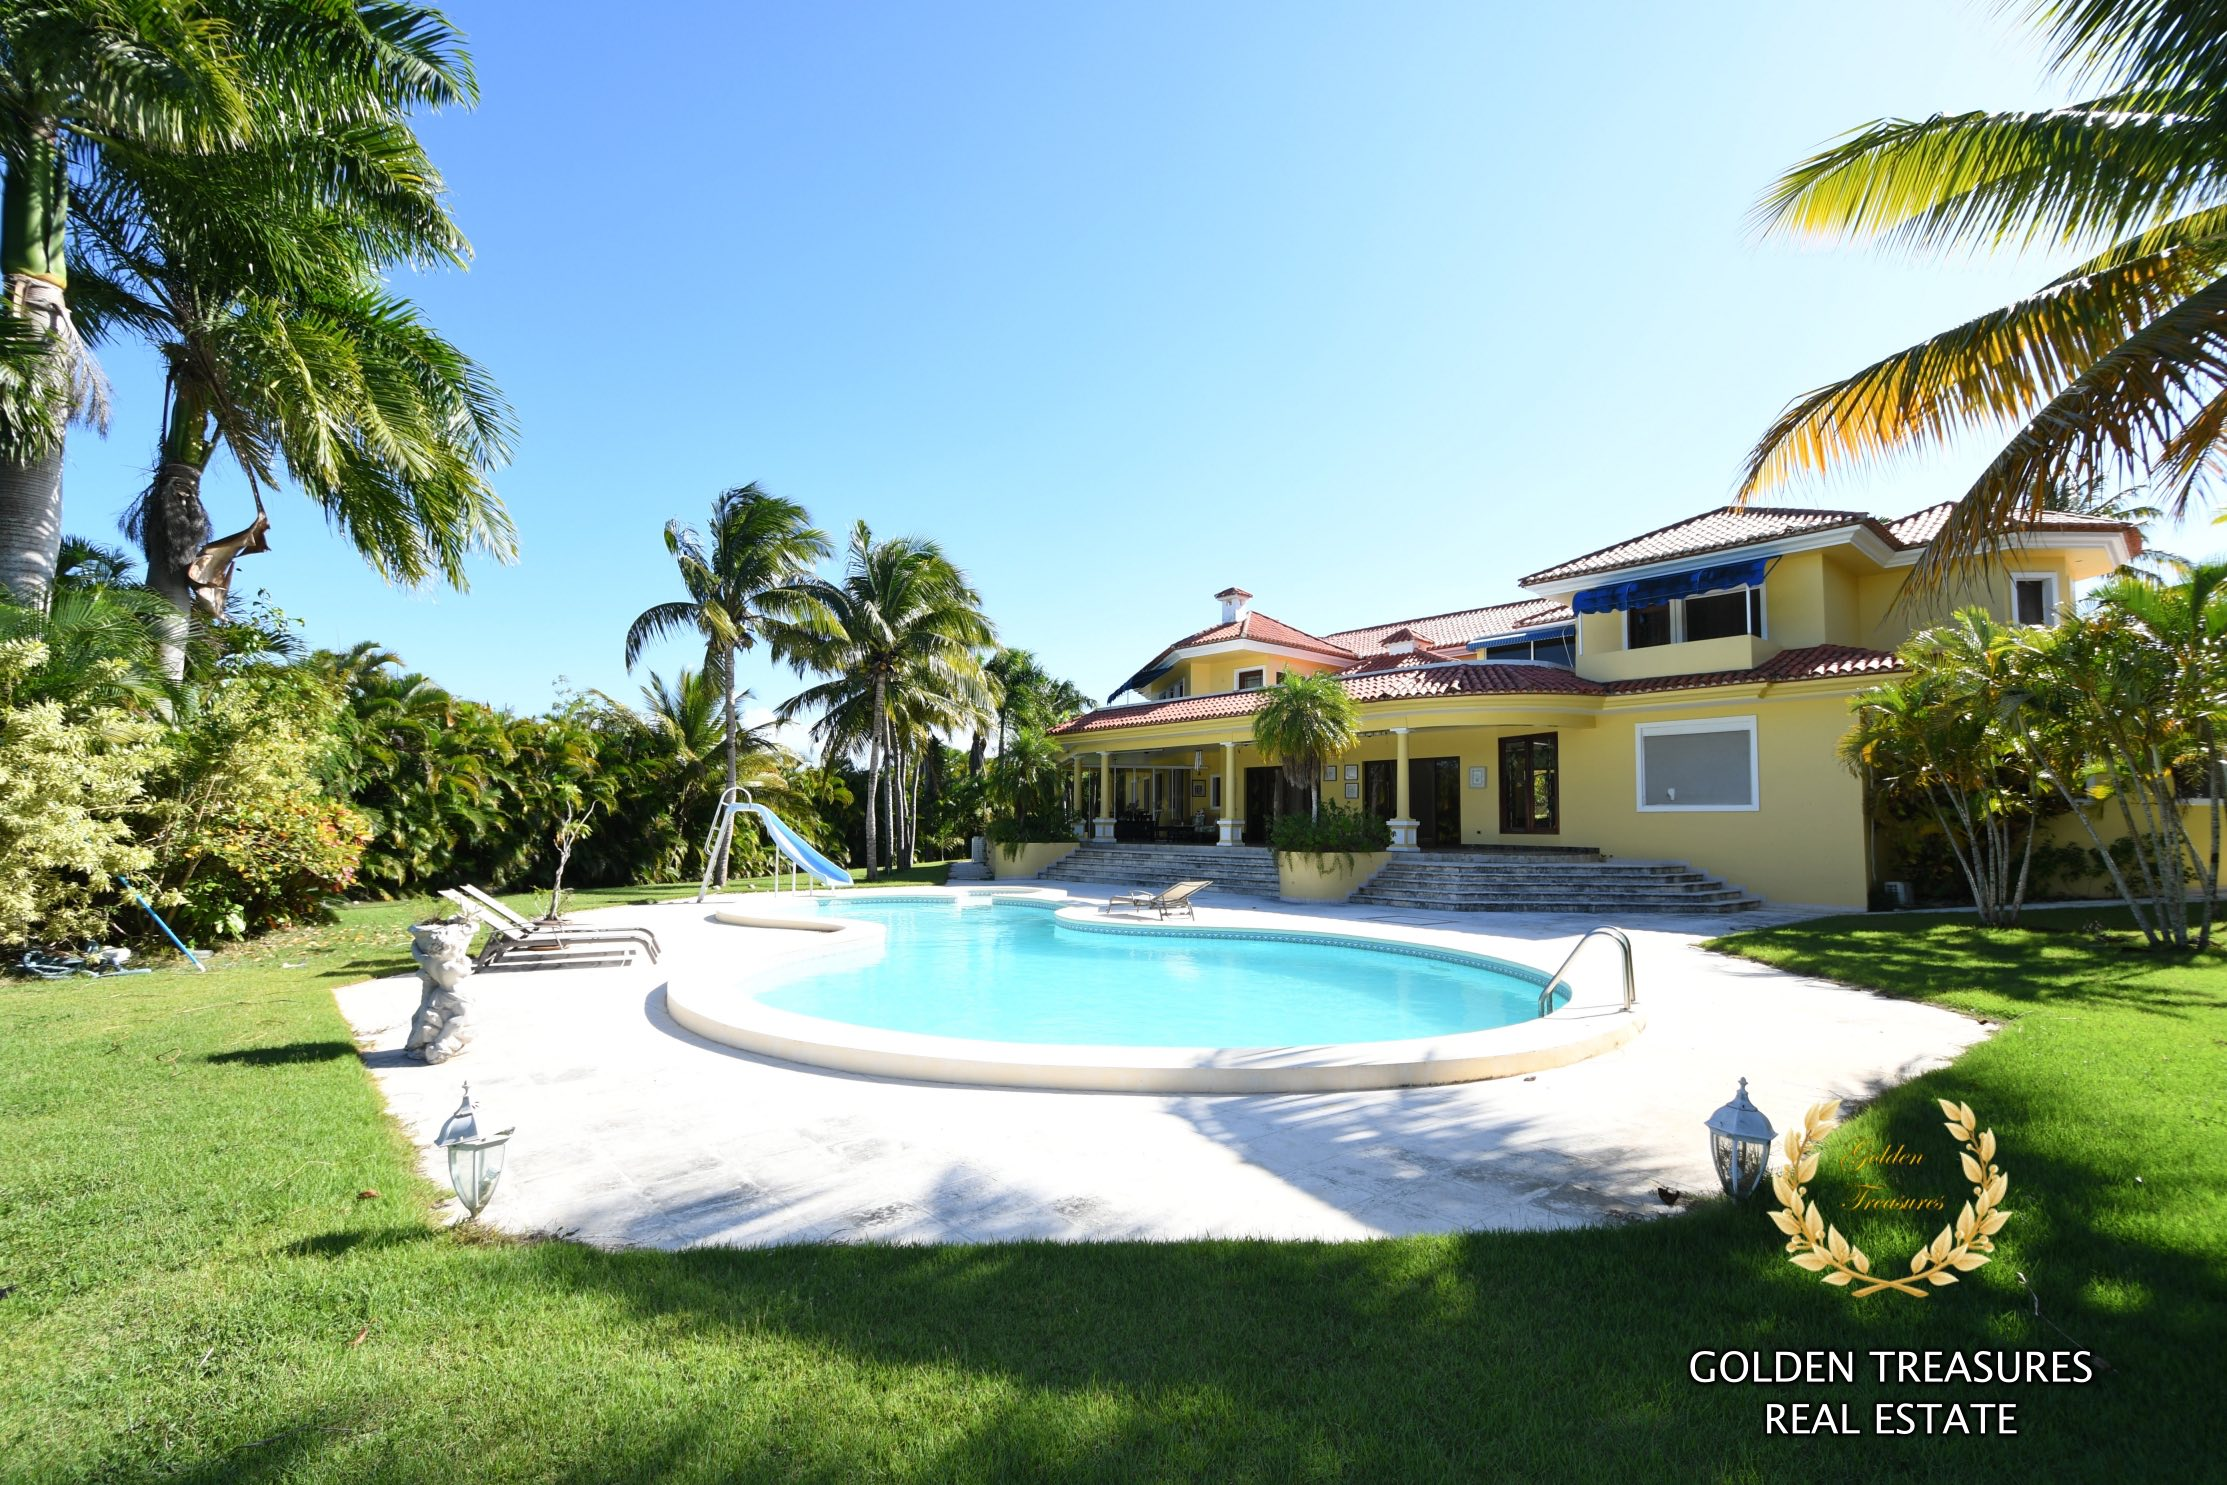 5 Bedroom Luxury Villa Sale Cabarete Dominican Republic